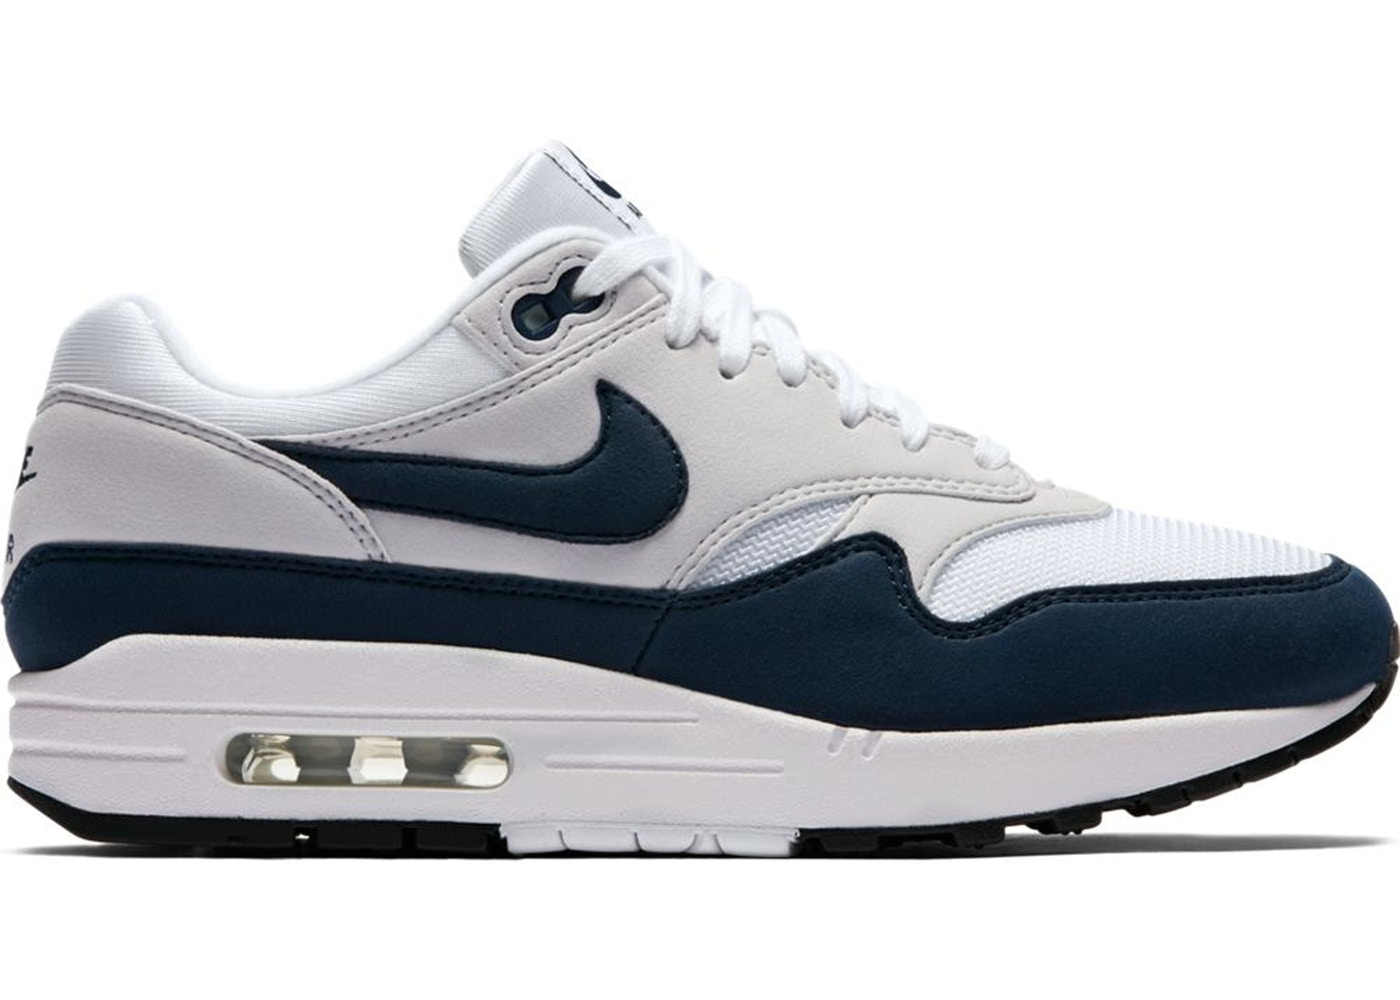 Air Max 1 Obsidian (W)